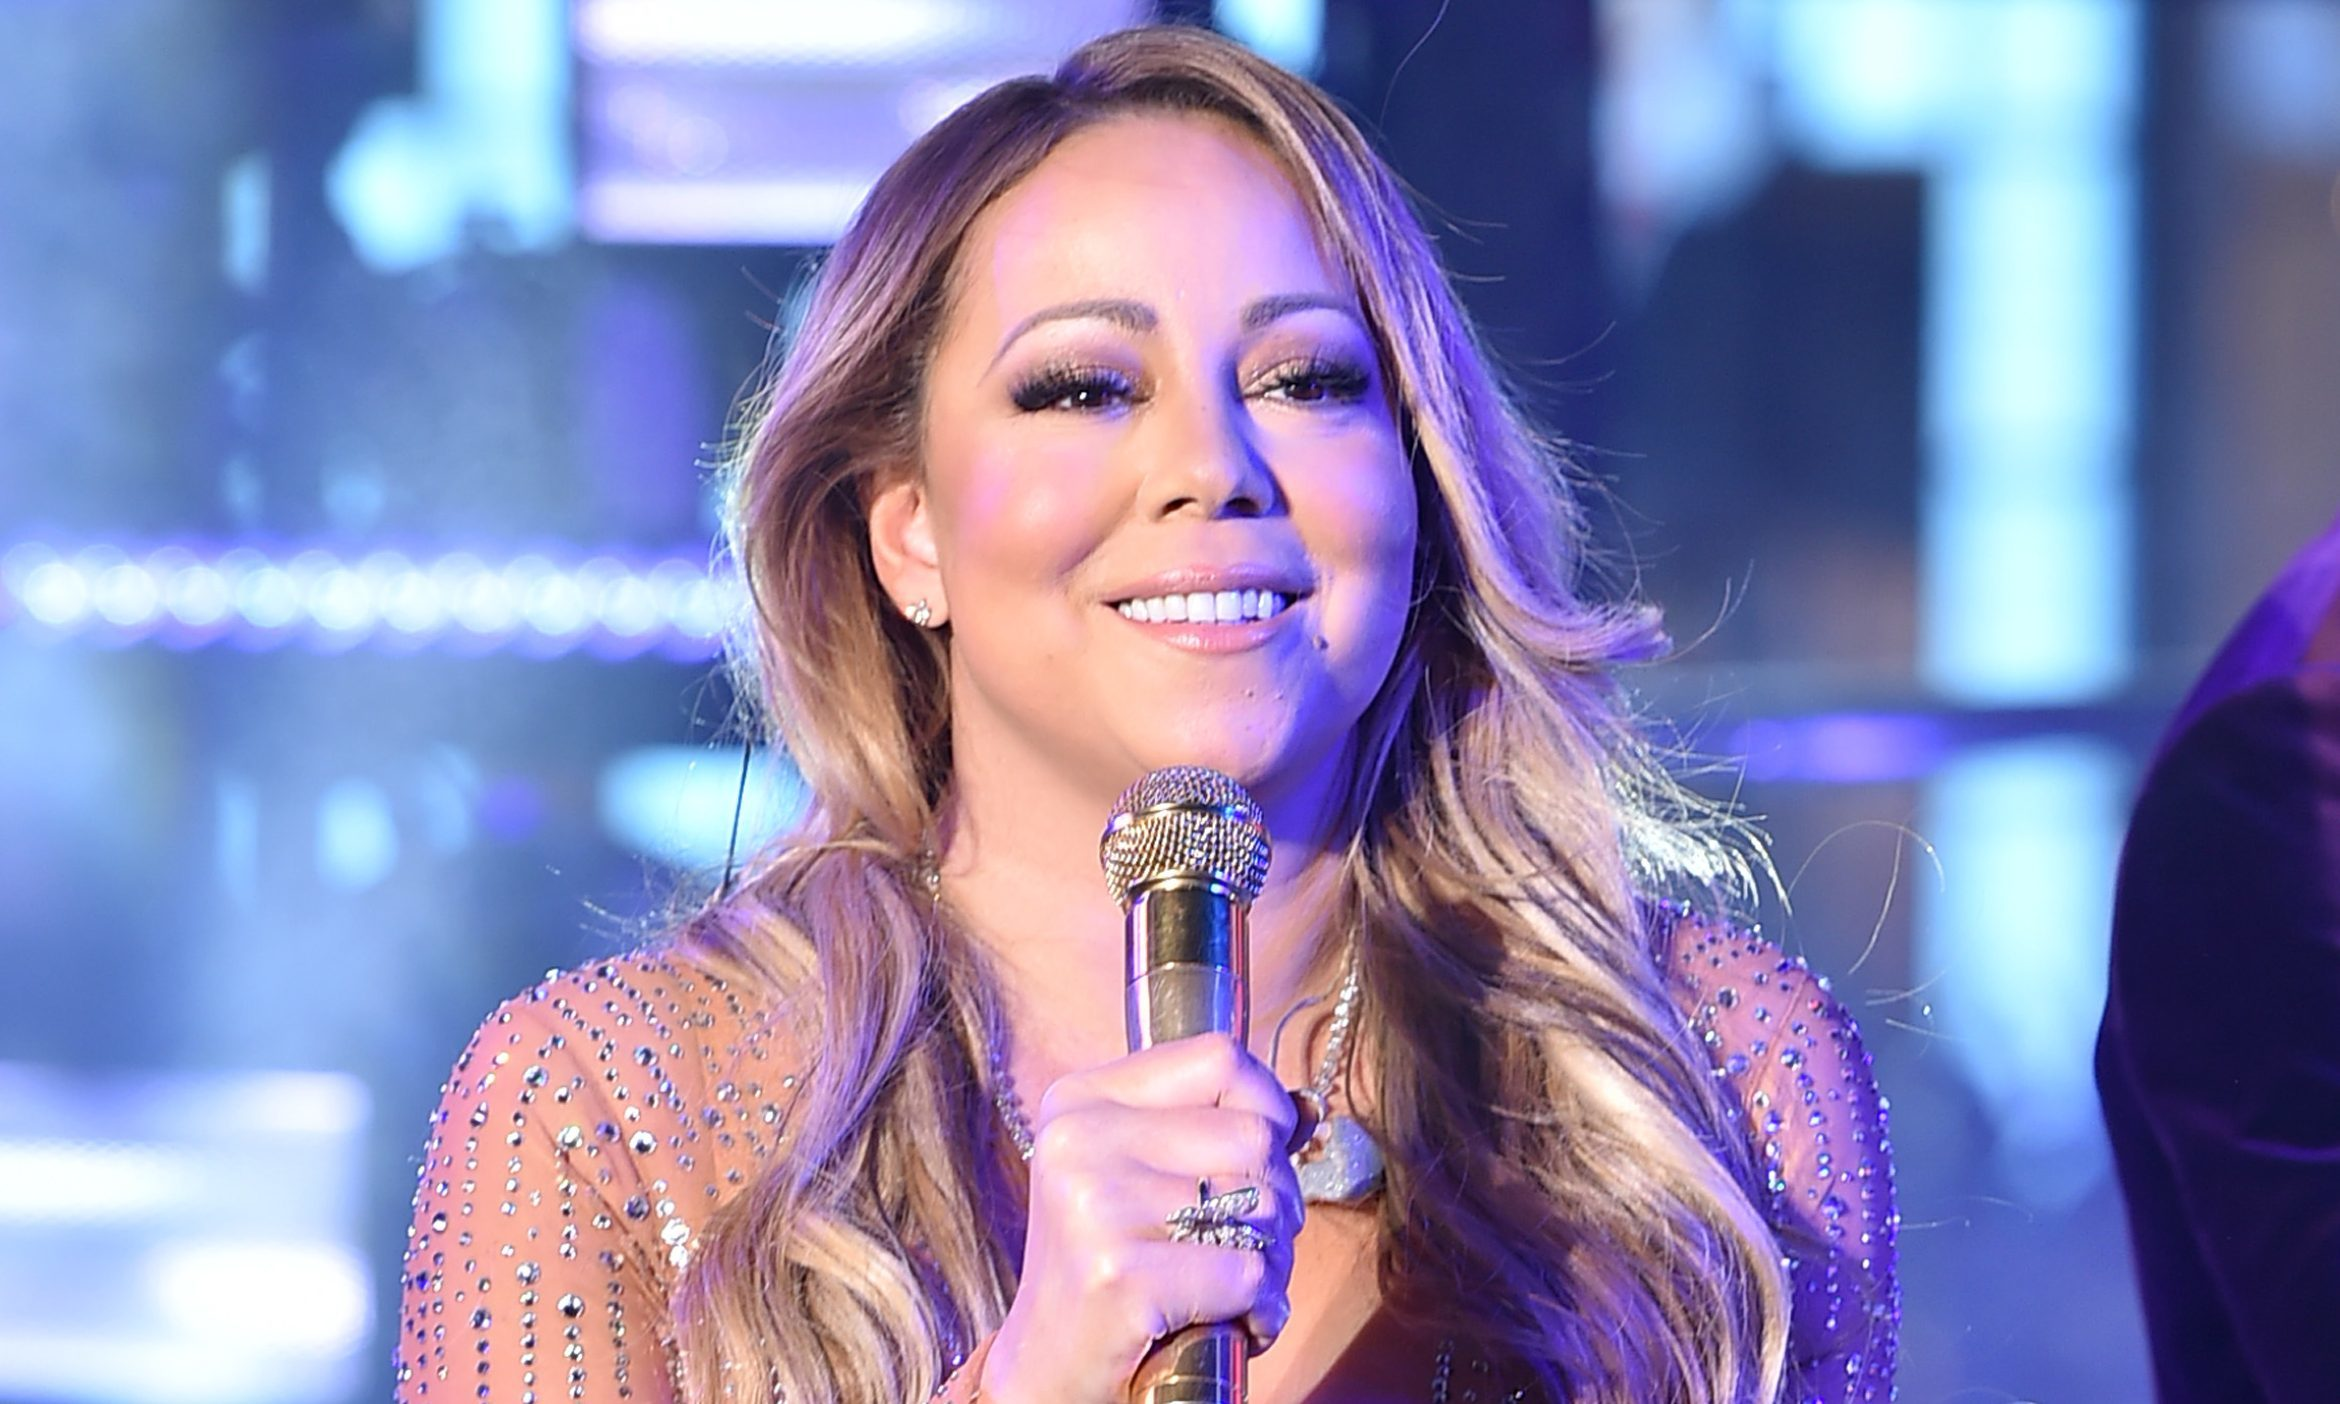 Mariah Carey performs onstage during New Year's Eve 2017 in Times Square  (Theo Wargo/Getty Images)